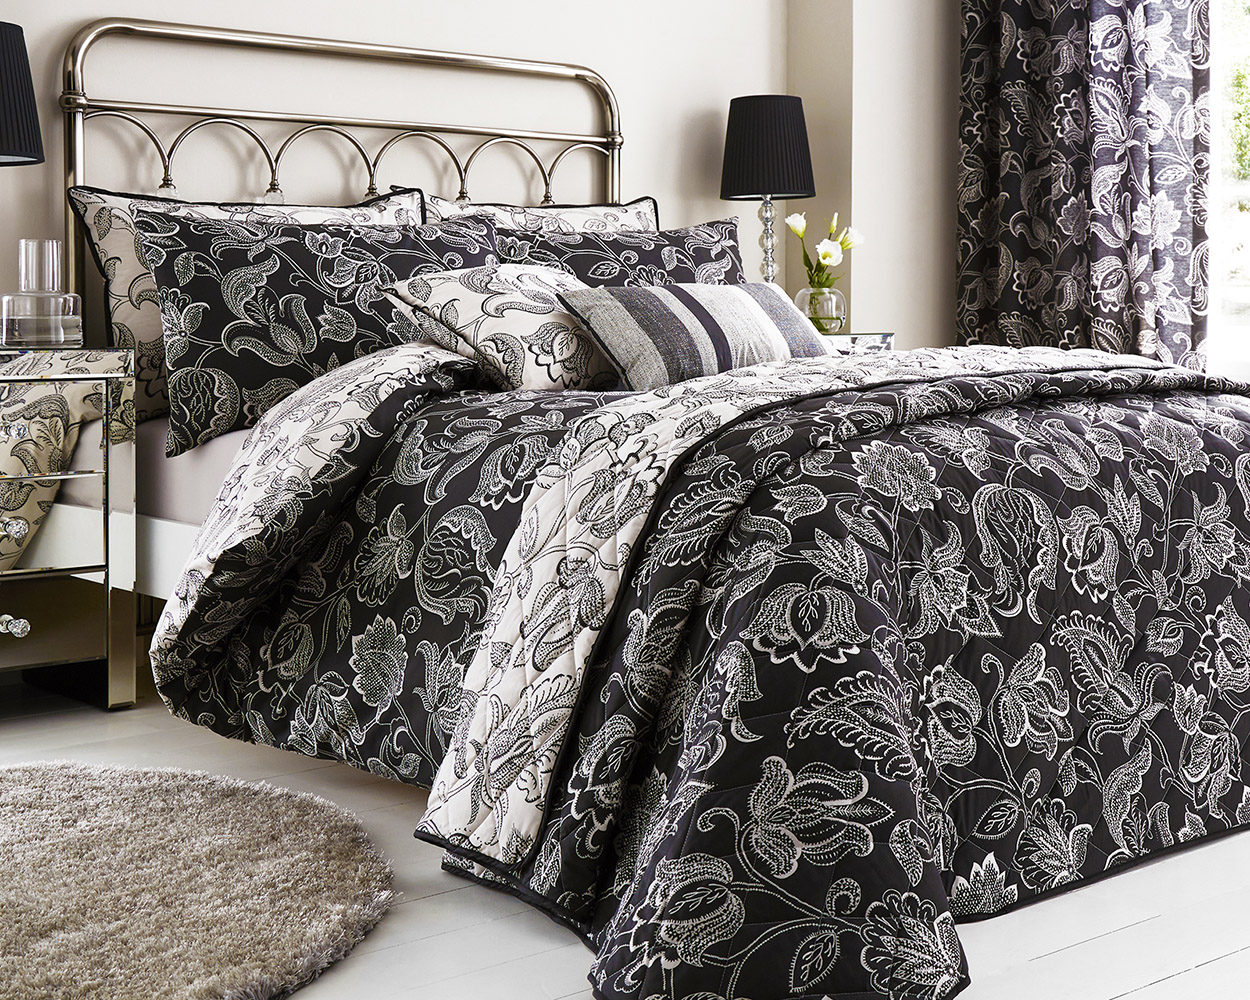 Cary Cotton Rich Floral Design Duvet Set and Bedding Range in Black